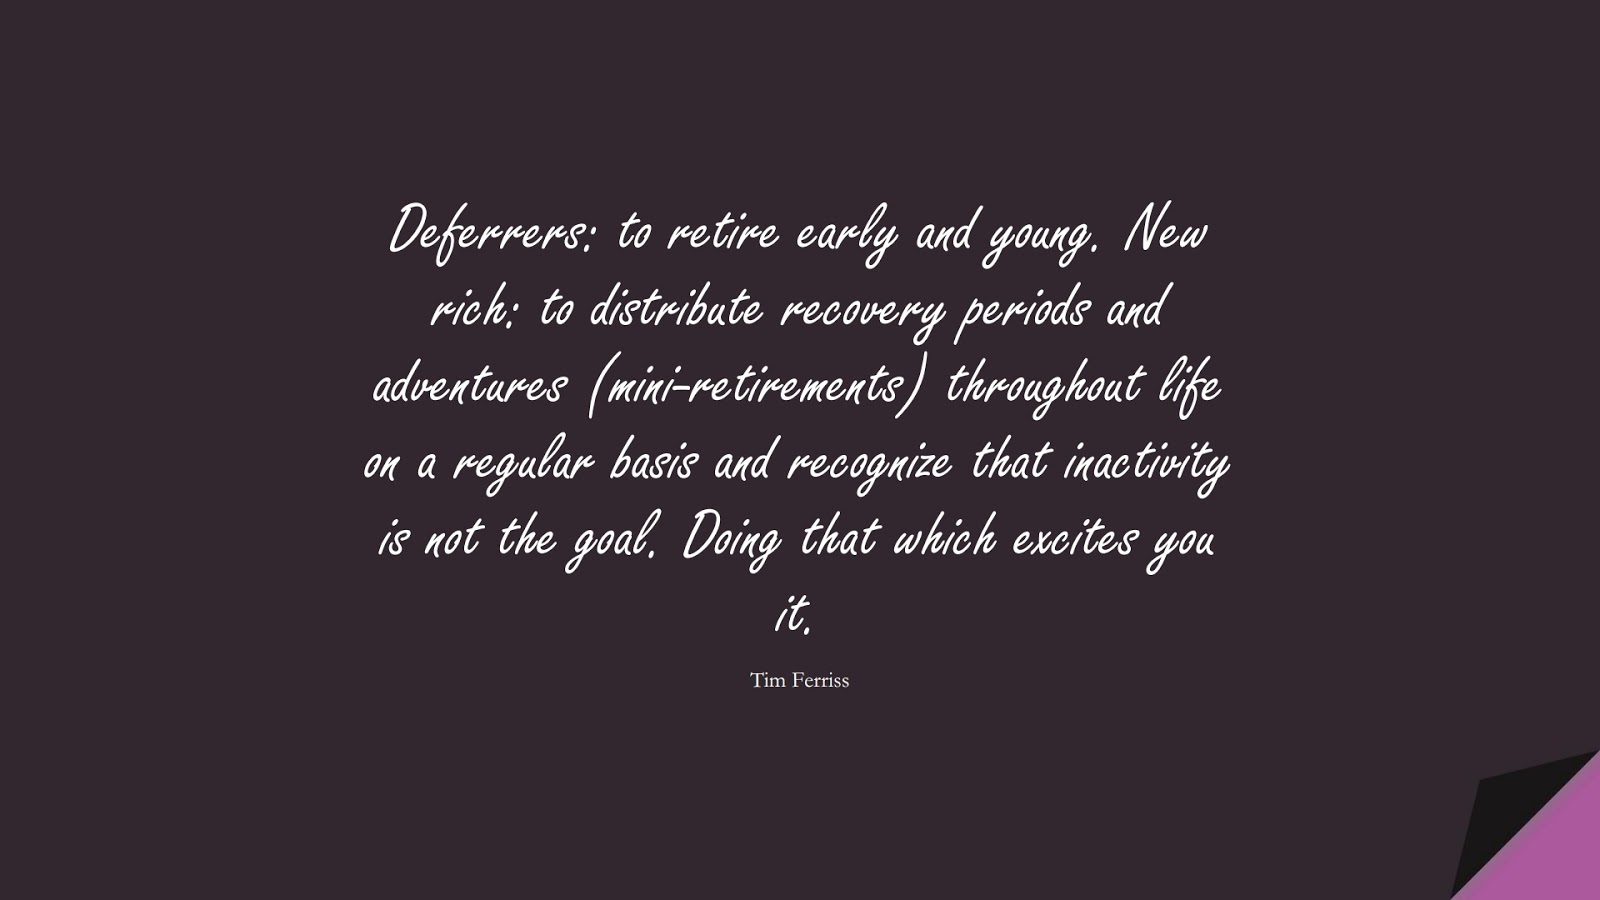 Deferrers: to retire early and young. New rich: to distribute recovery periods and adventures (mini-retirements) throughout life on a regular basis and recognize that inactivity is not the goal. Doing that which excites you it. (Tim Ferriss);  #TimFerrissQuotes